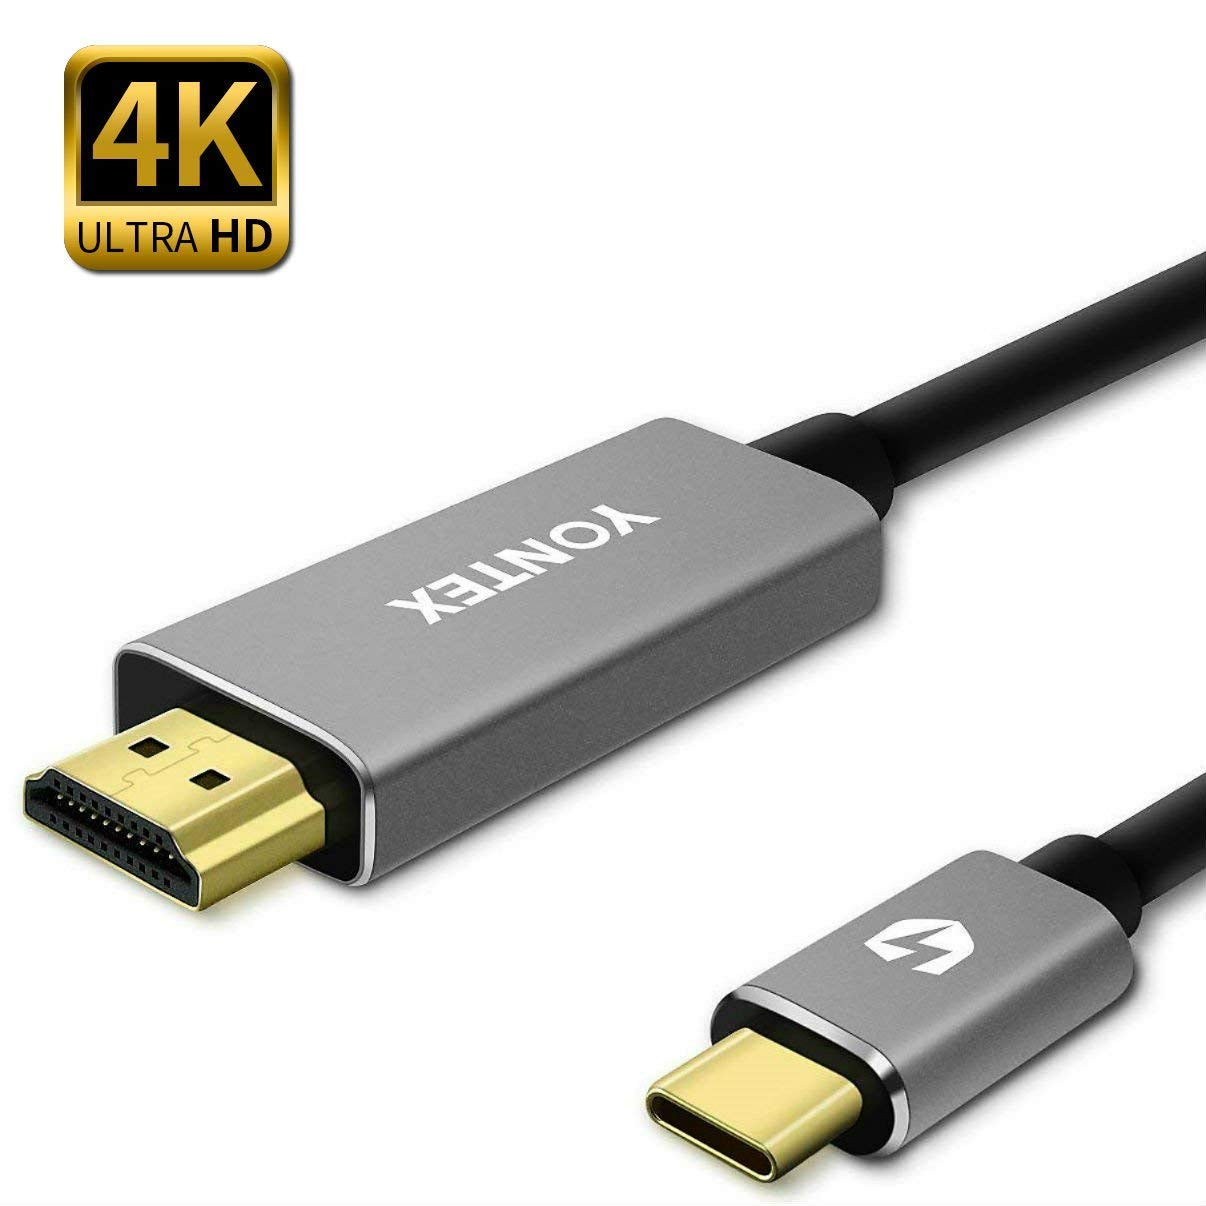 USB C to HDMI Cable 6ft, 4K 60Hz USB 3.1 Type C Male (Thunderbolt 3 Compatible) to HDMI Cable The Best for 2016 MacBook Pro, 2015 MacBook, ChromeBook YONTEX YT-CB-HDMI